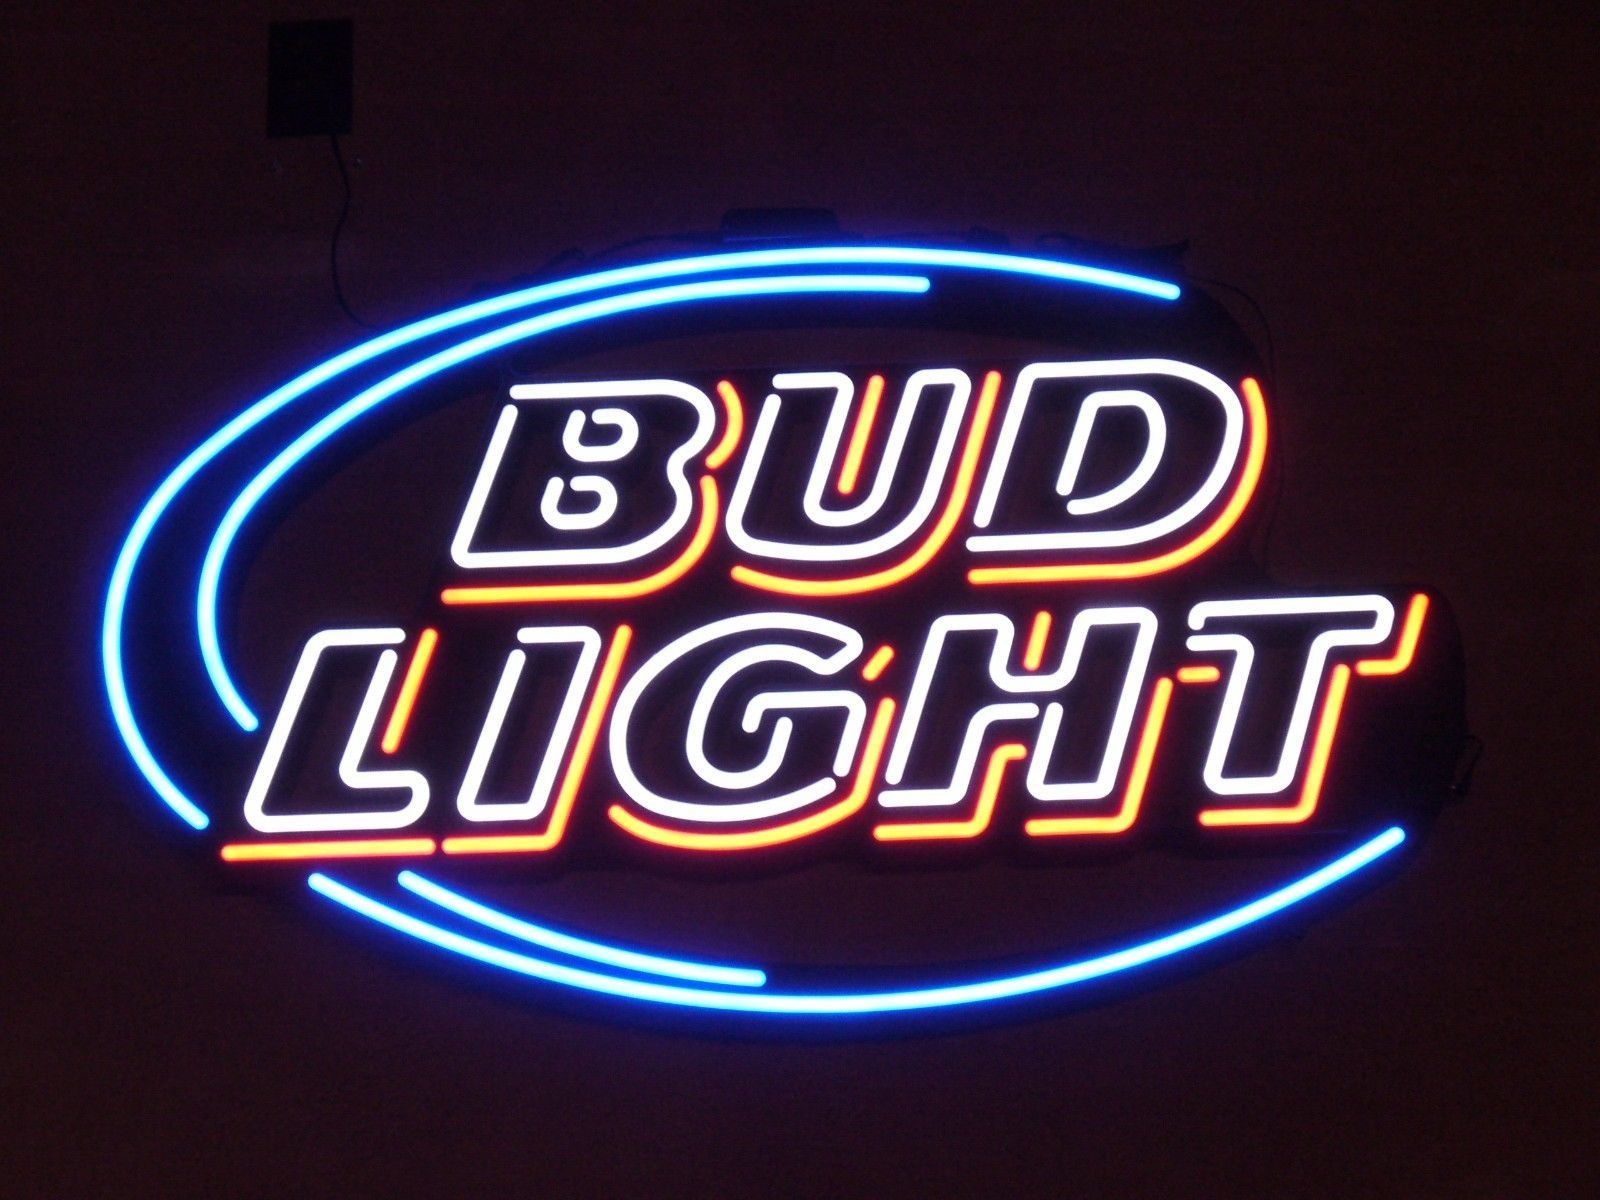 "New Bud Light Budweiser Wall Decor Happy Hour Lamp Light BEER Neon Sign 24""x20"""